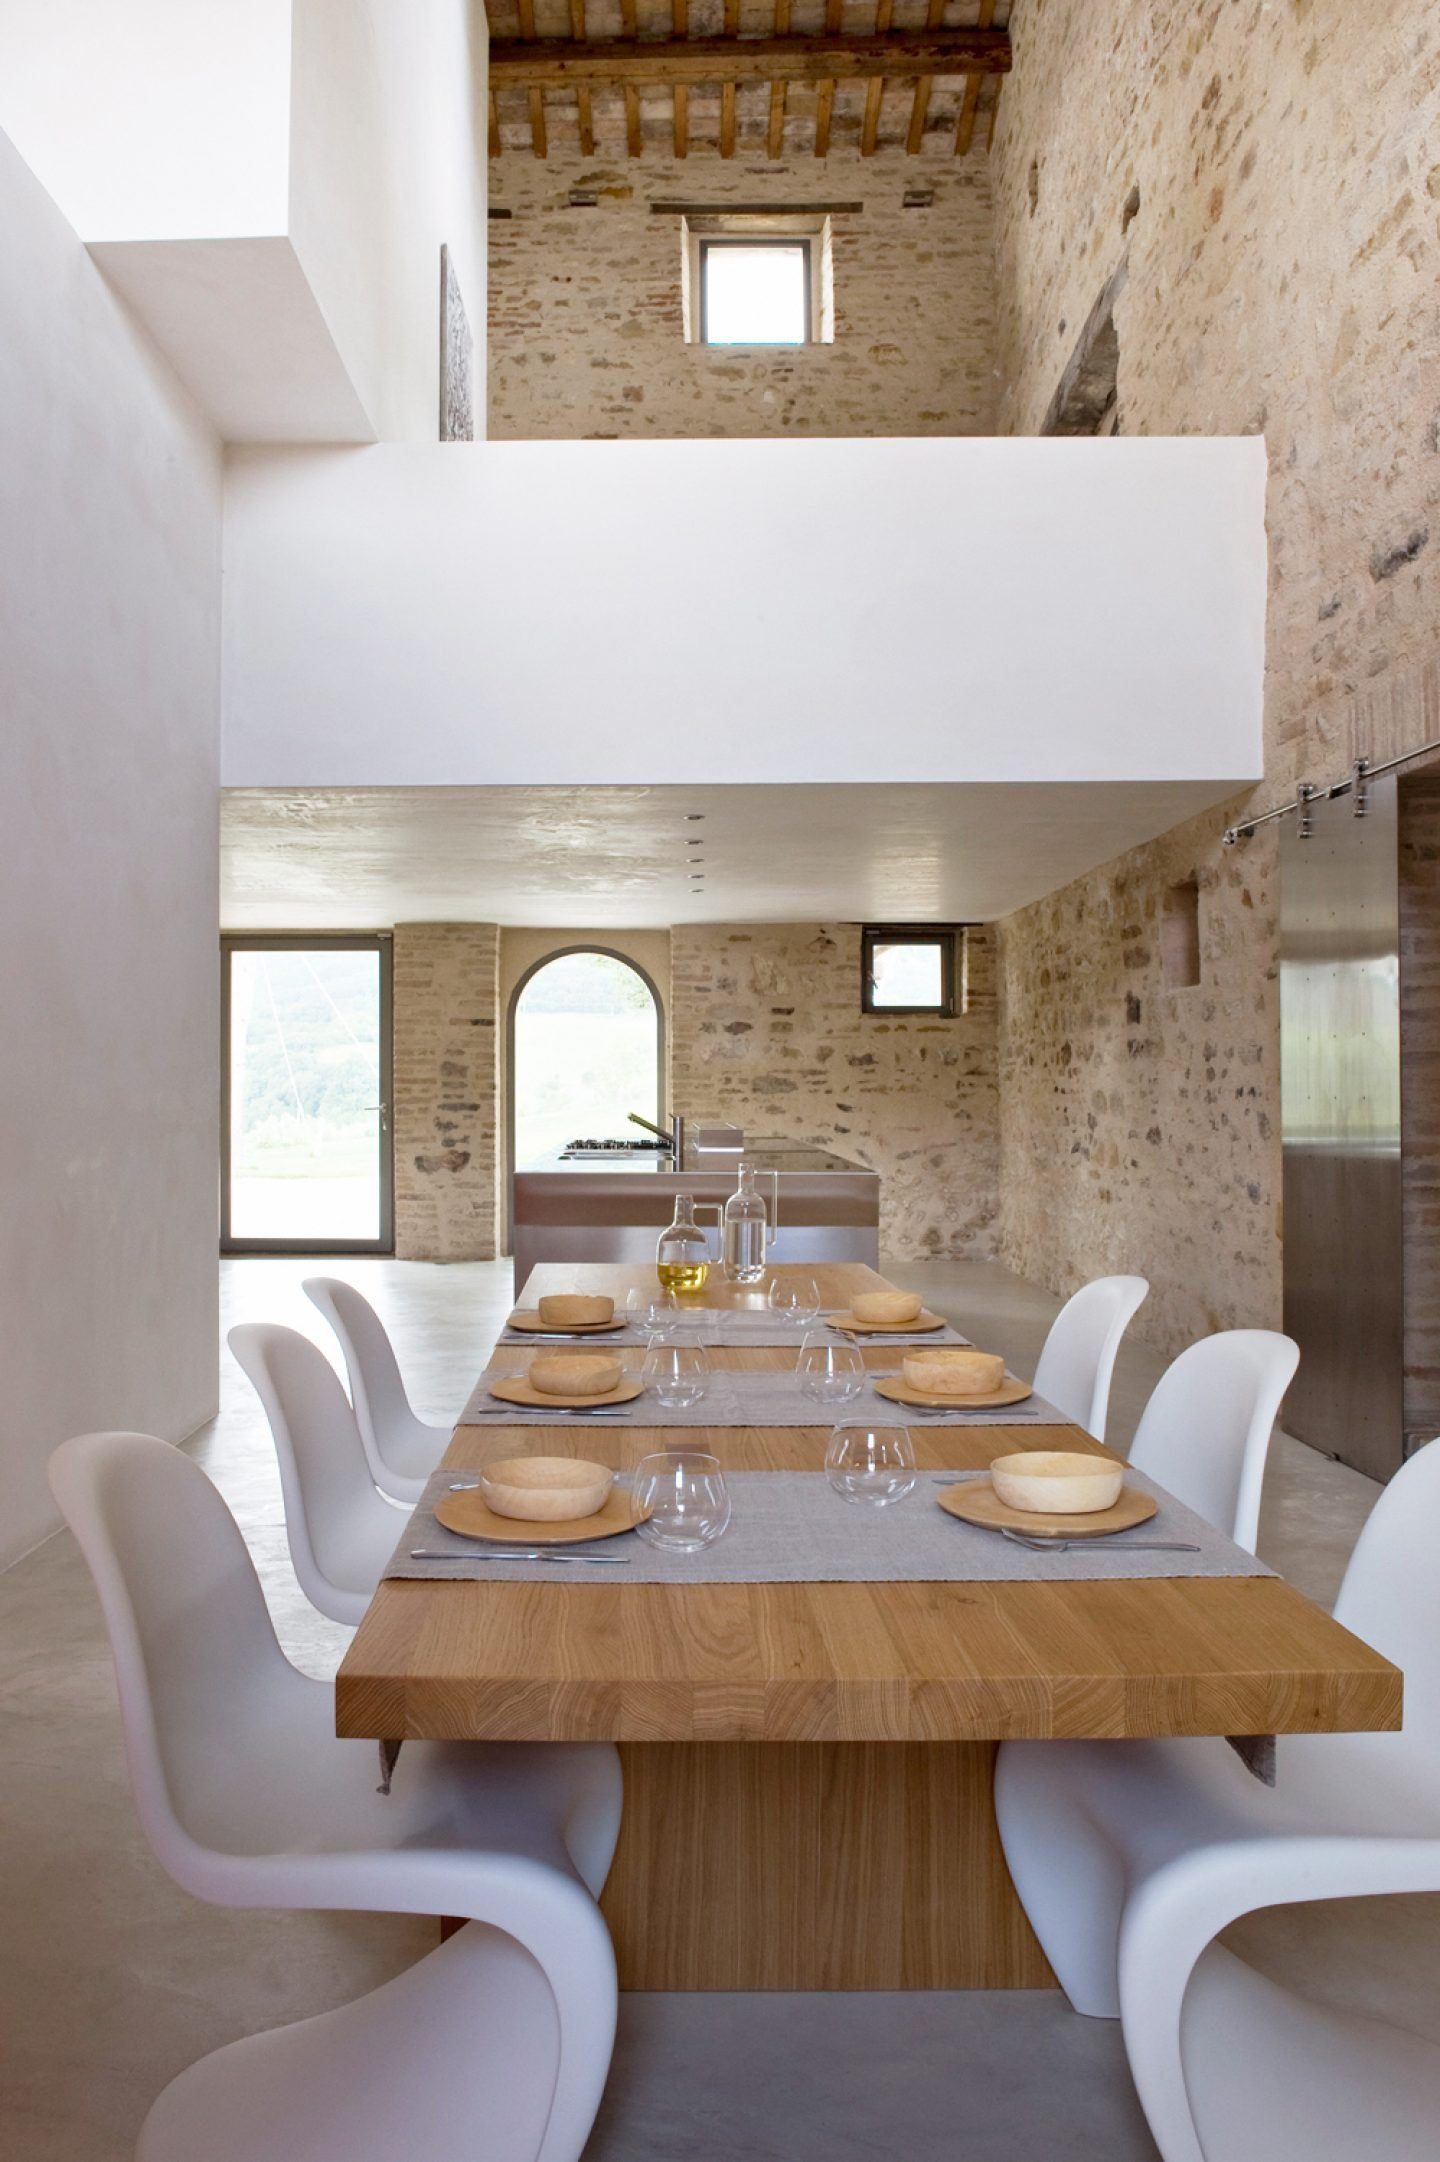 ignant-travel-casa-olivi-49